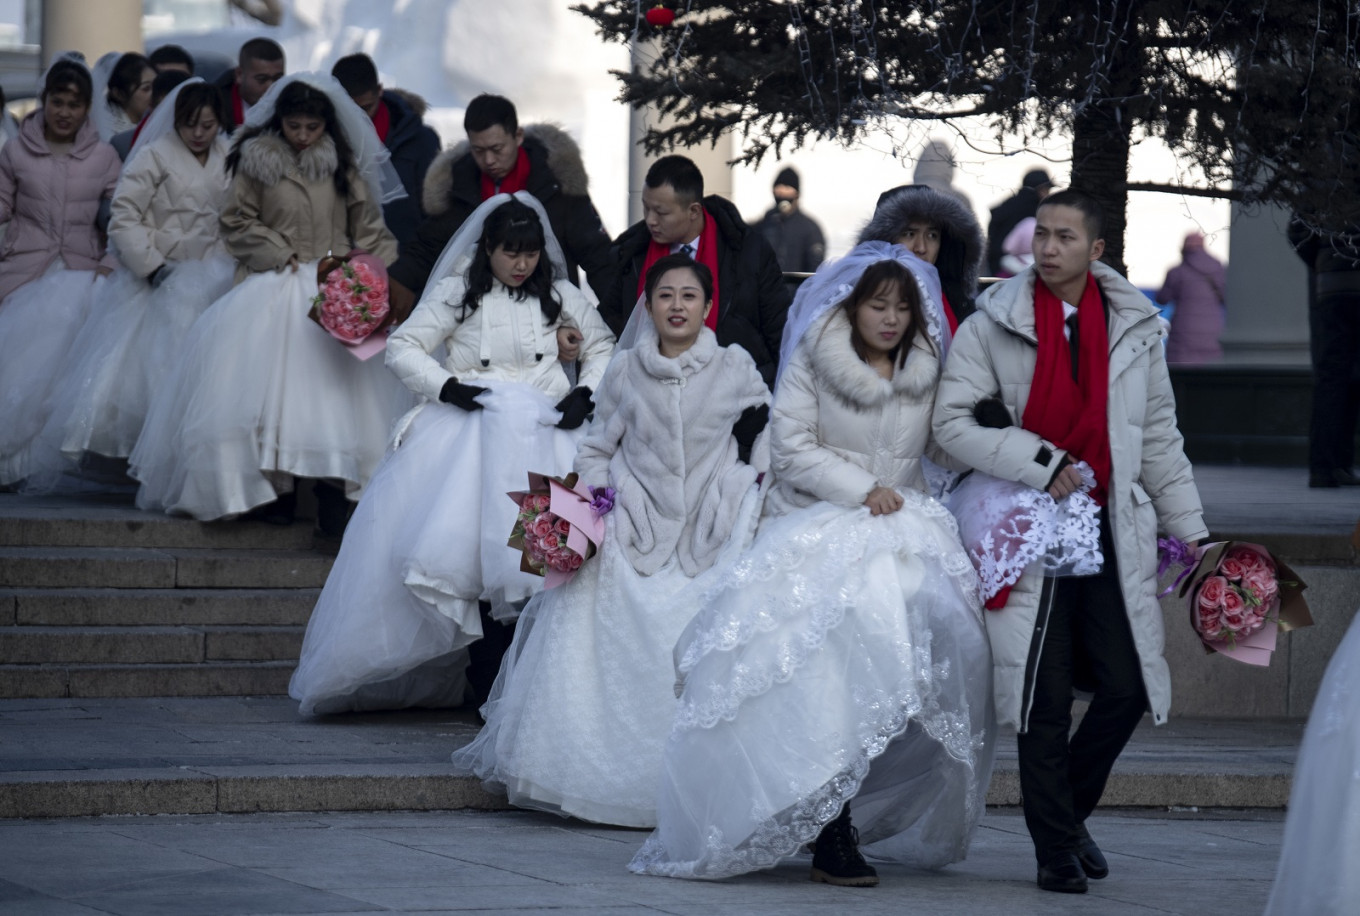 China urges no weddings, short funerals to contain virus